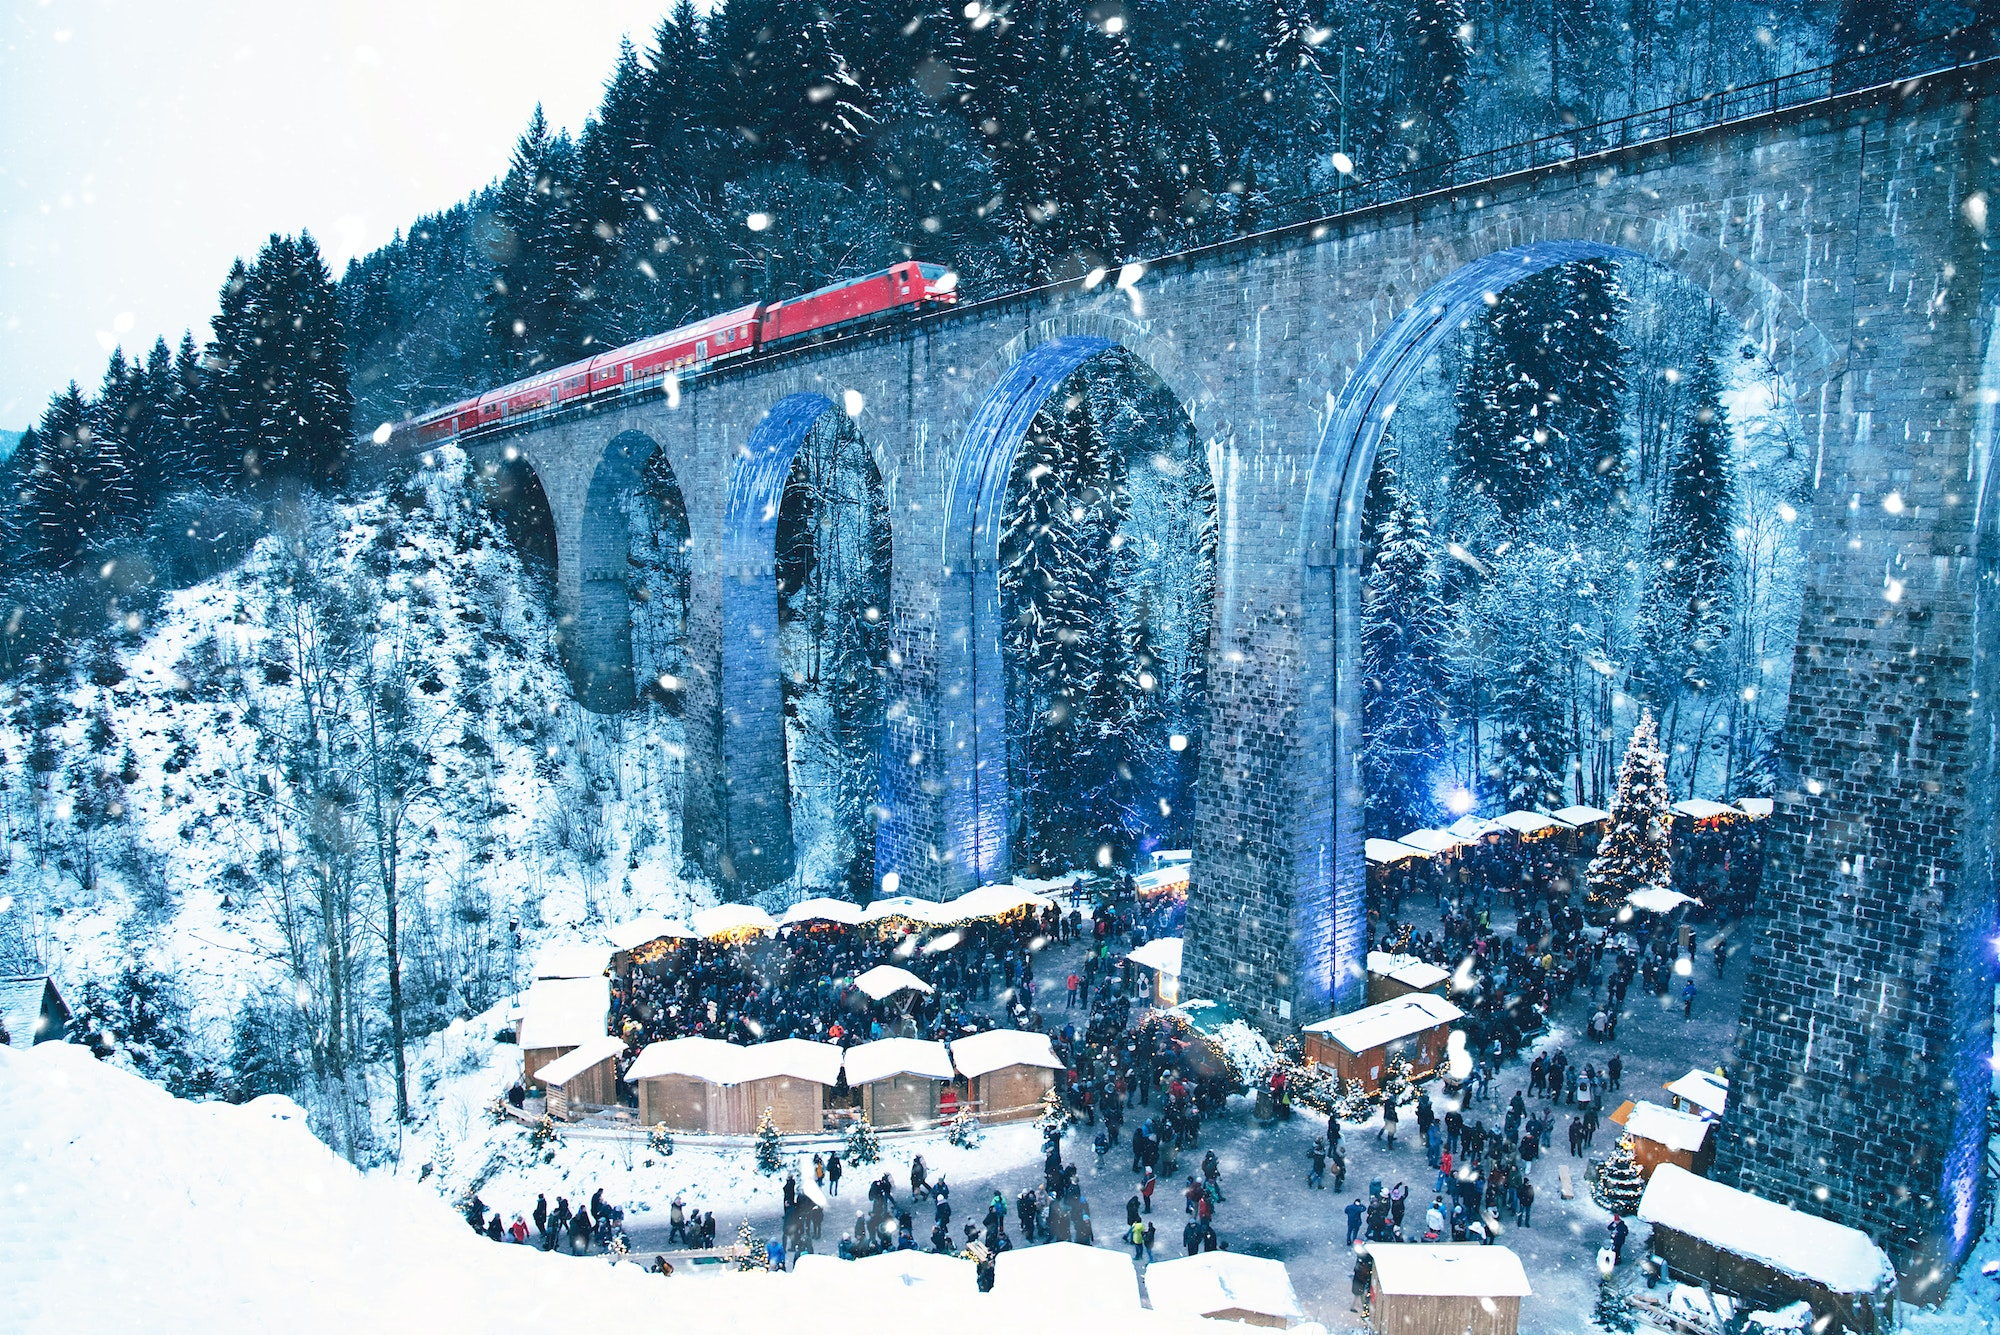 The Ravenna Gorge Christmas market is located in Germany's Black Forest.